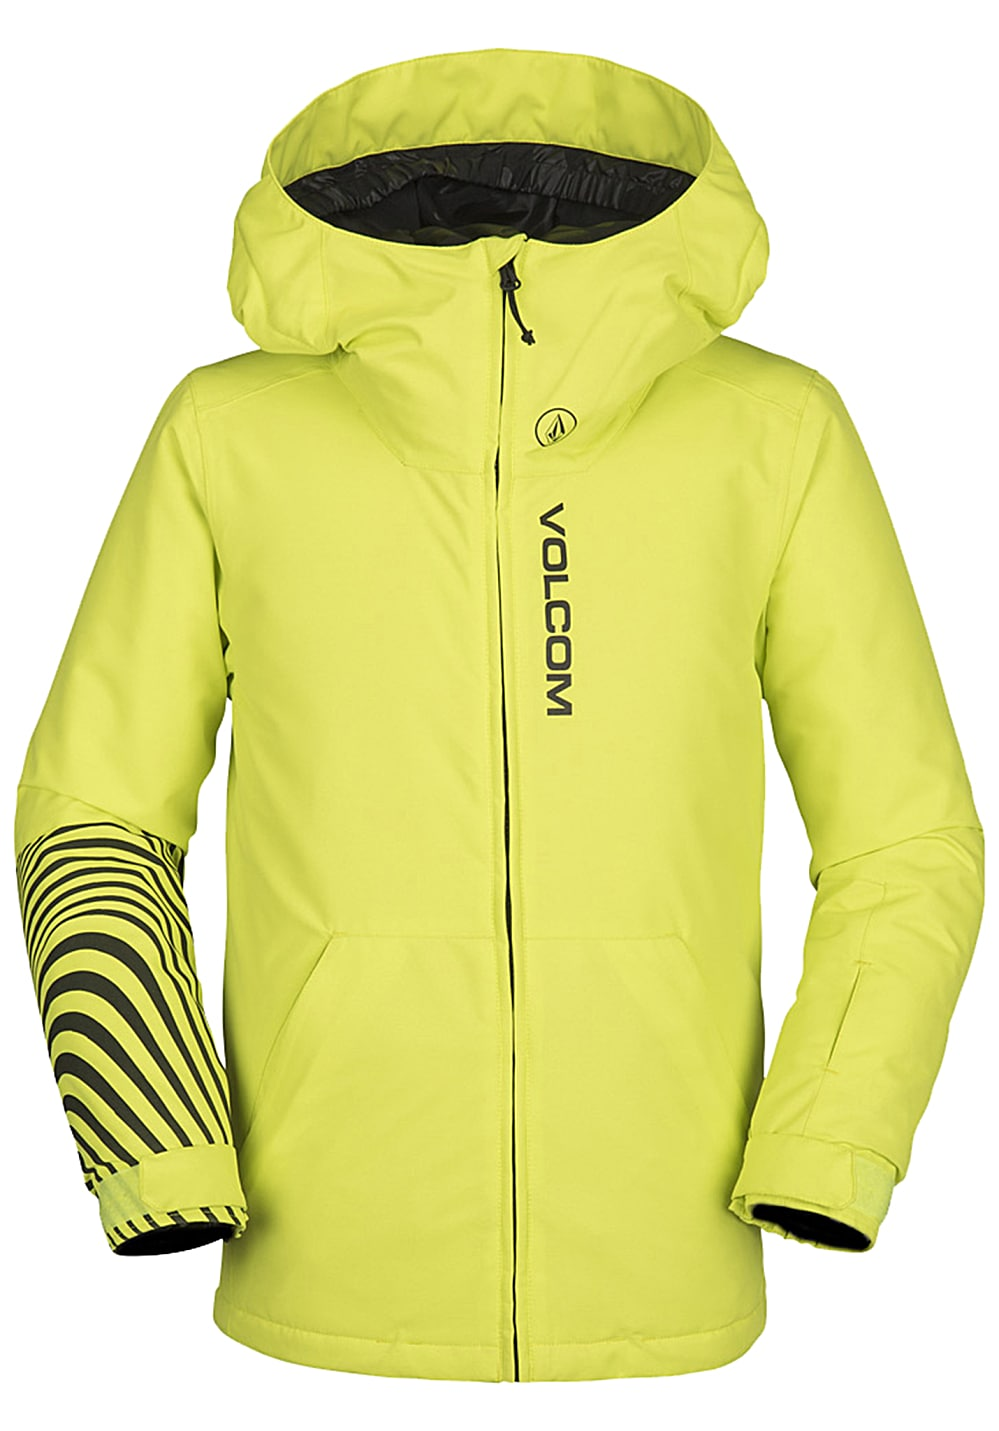 Boysregenwinter - Volcom Vernon Ins Snowboardjacke Gelb - Onlineshop Planet Sports